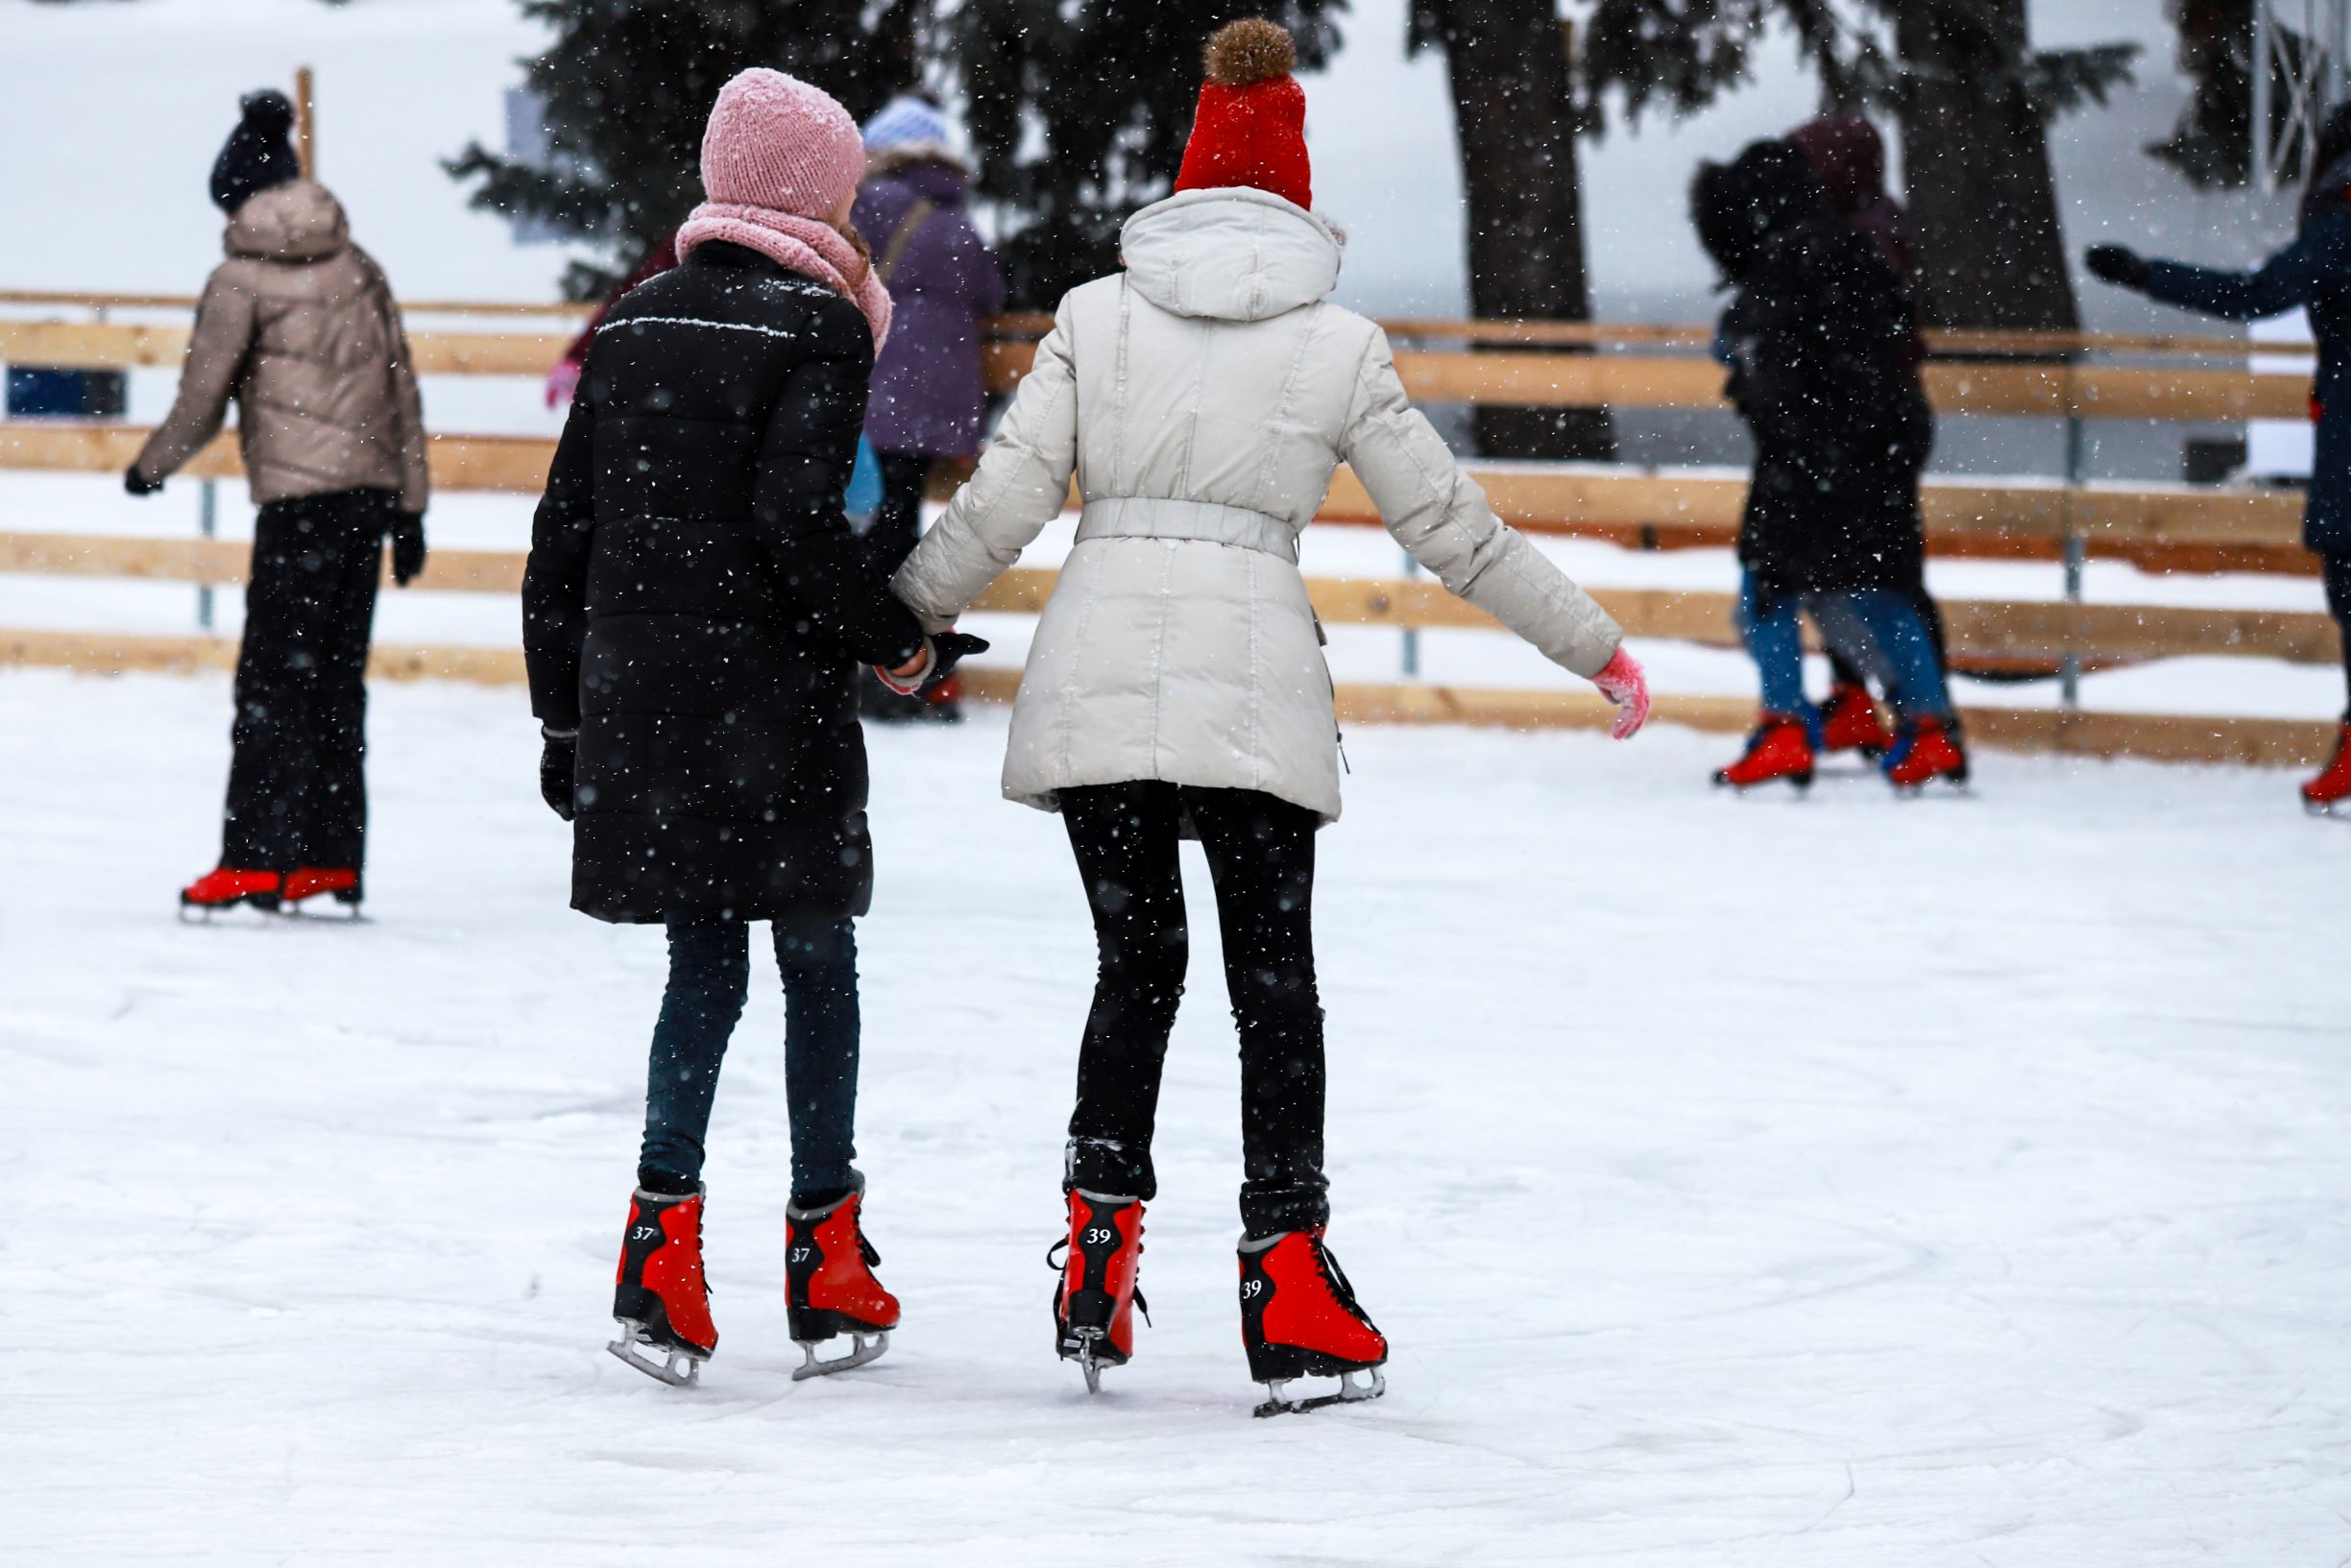 Photo of people skating on an outdoor ice rink.